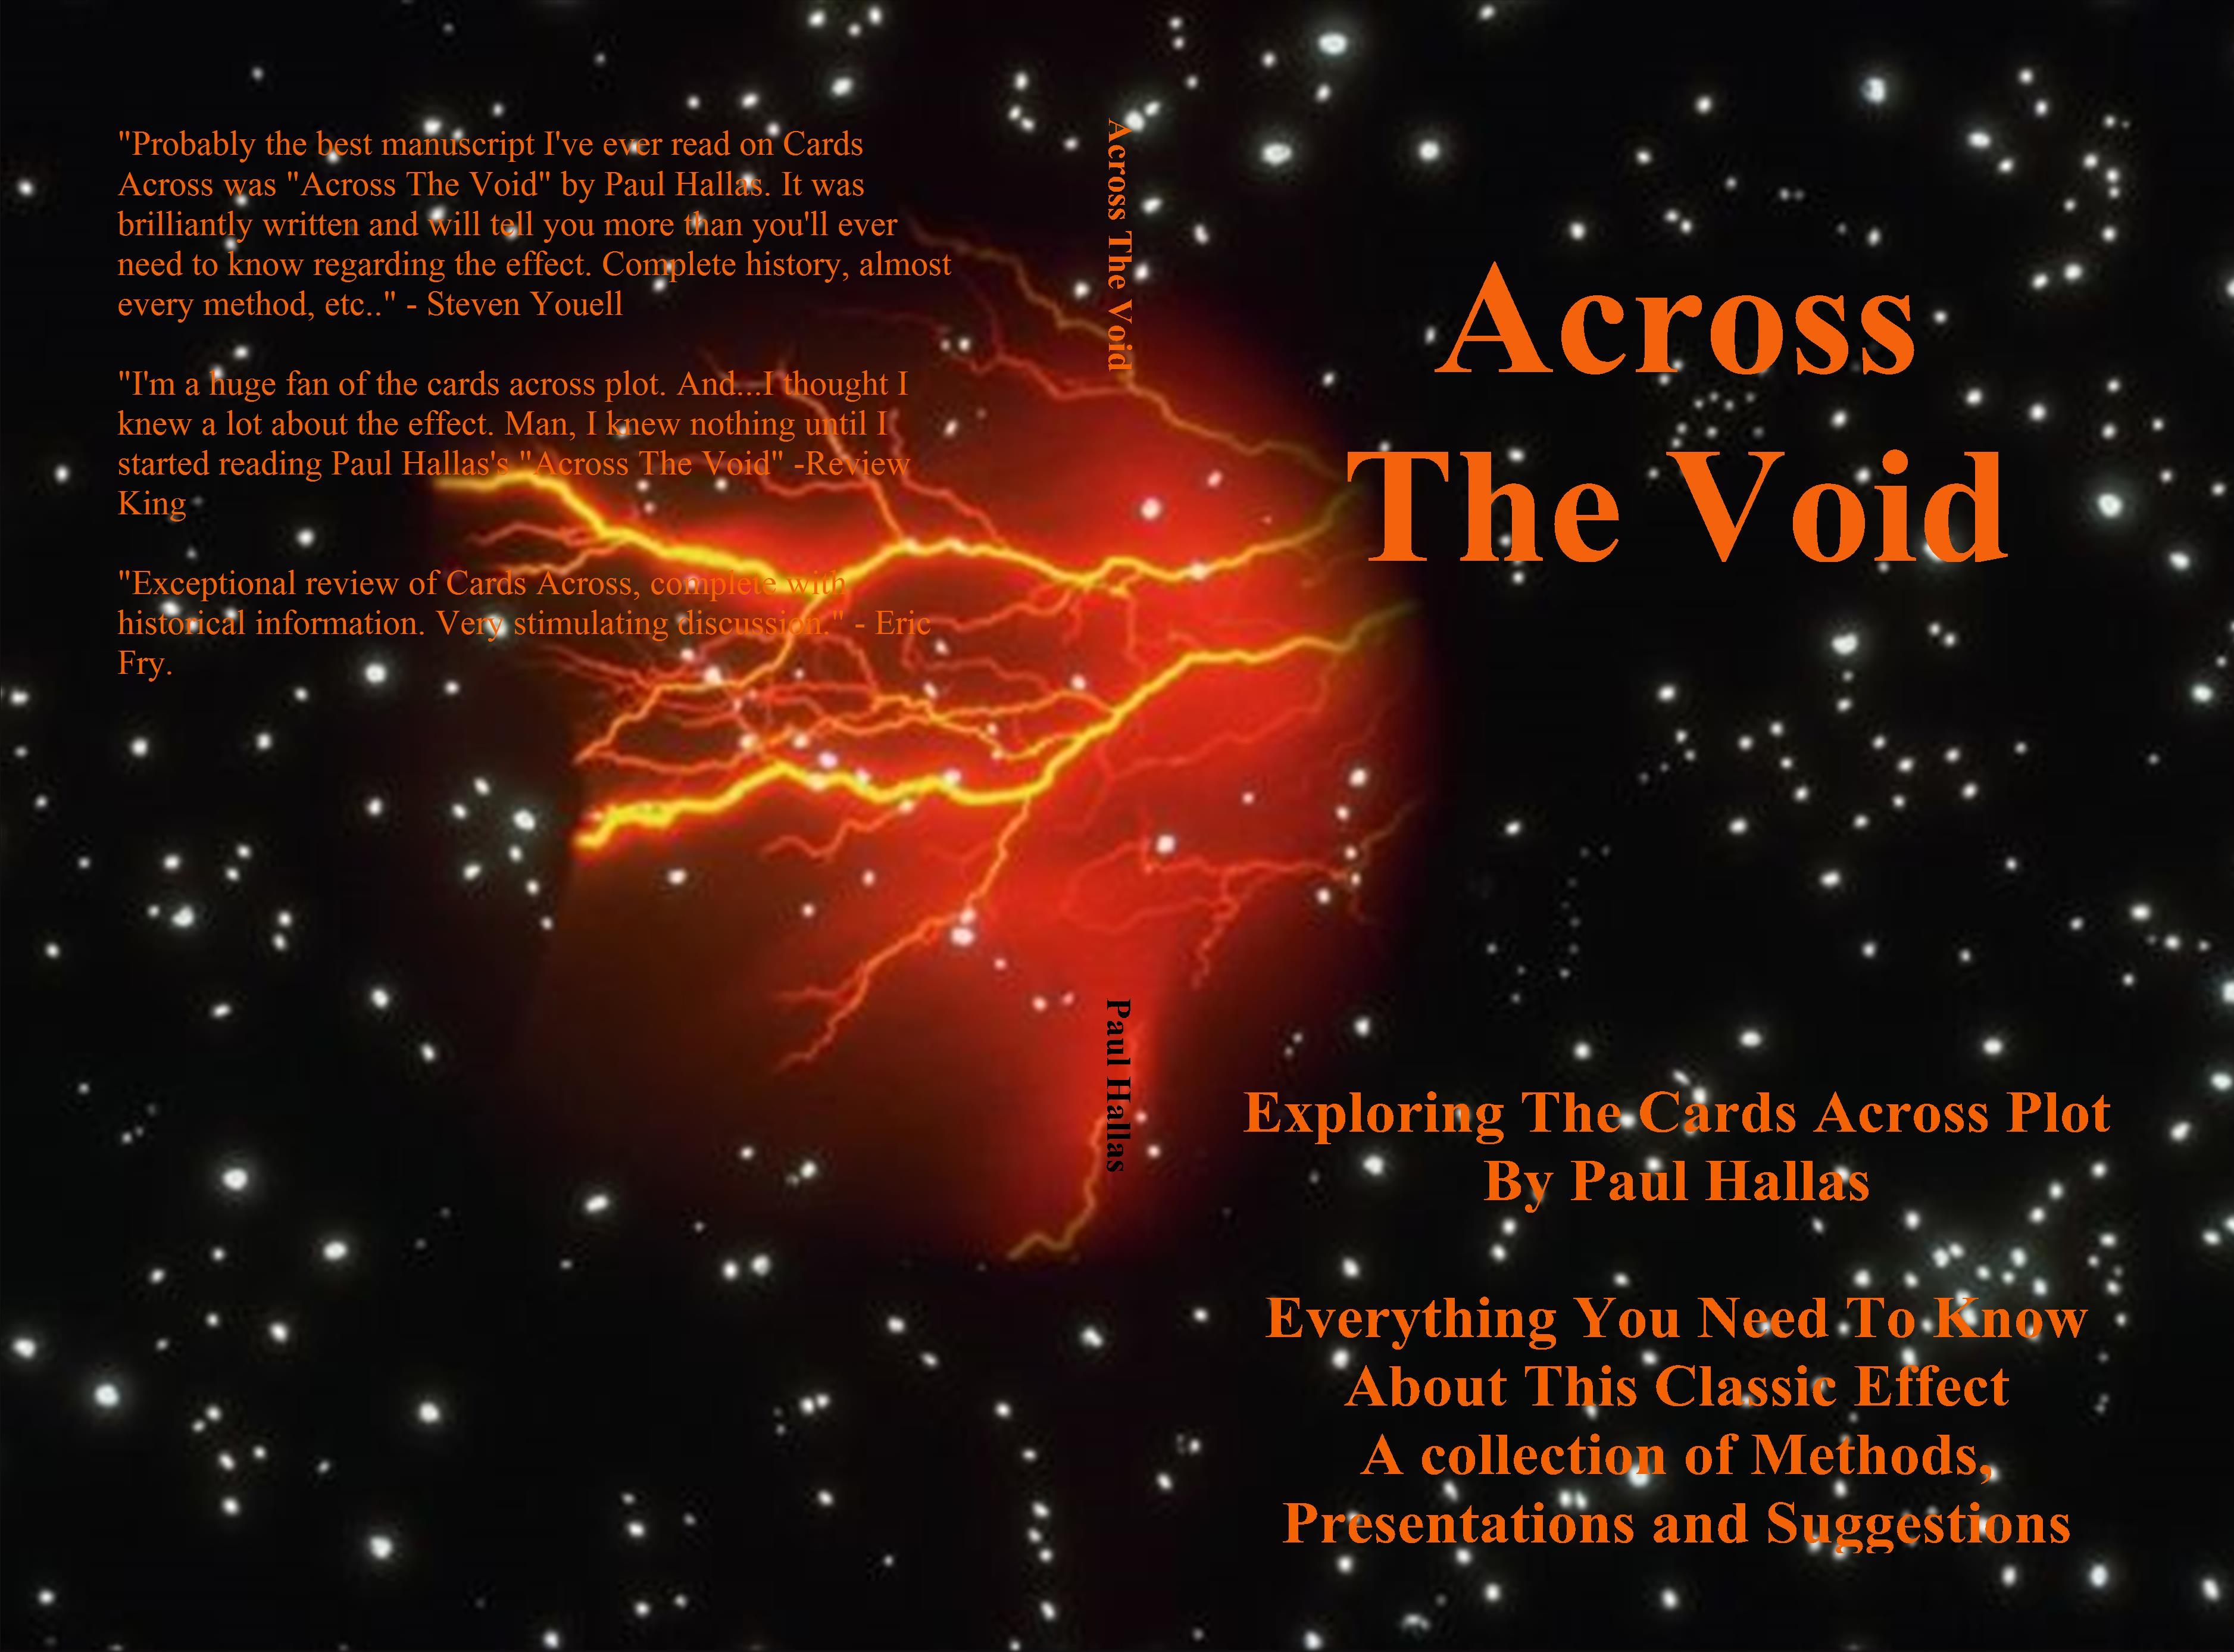 Across The Void cover image